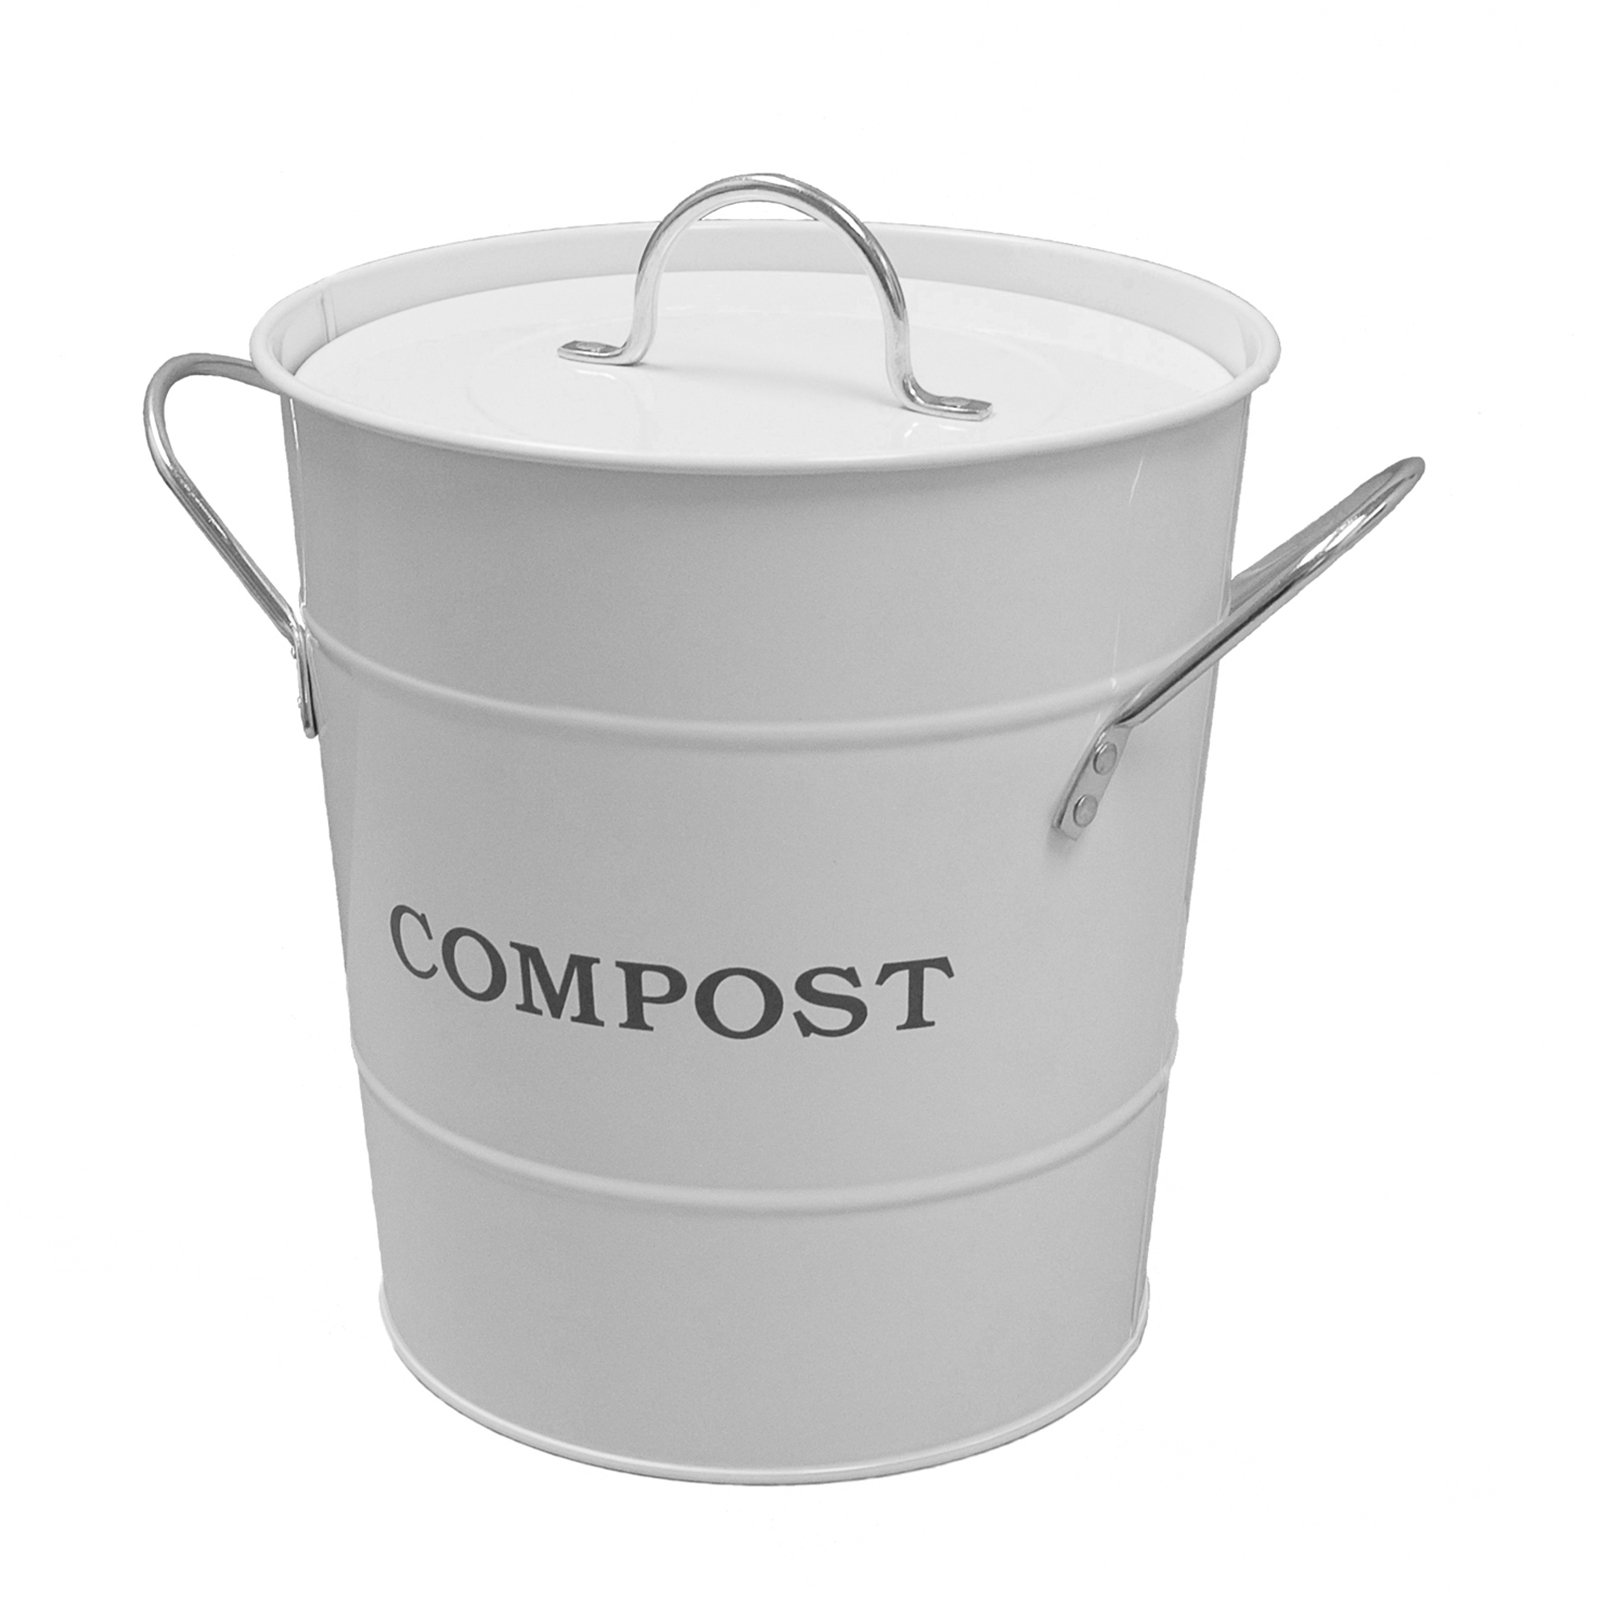 Exaco 2 in 1 Compost Bucket by Exaco